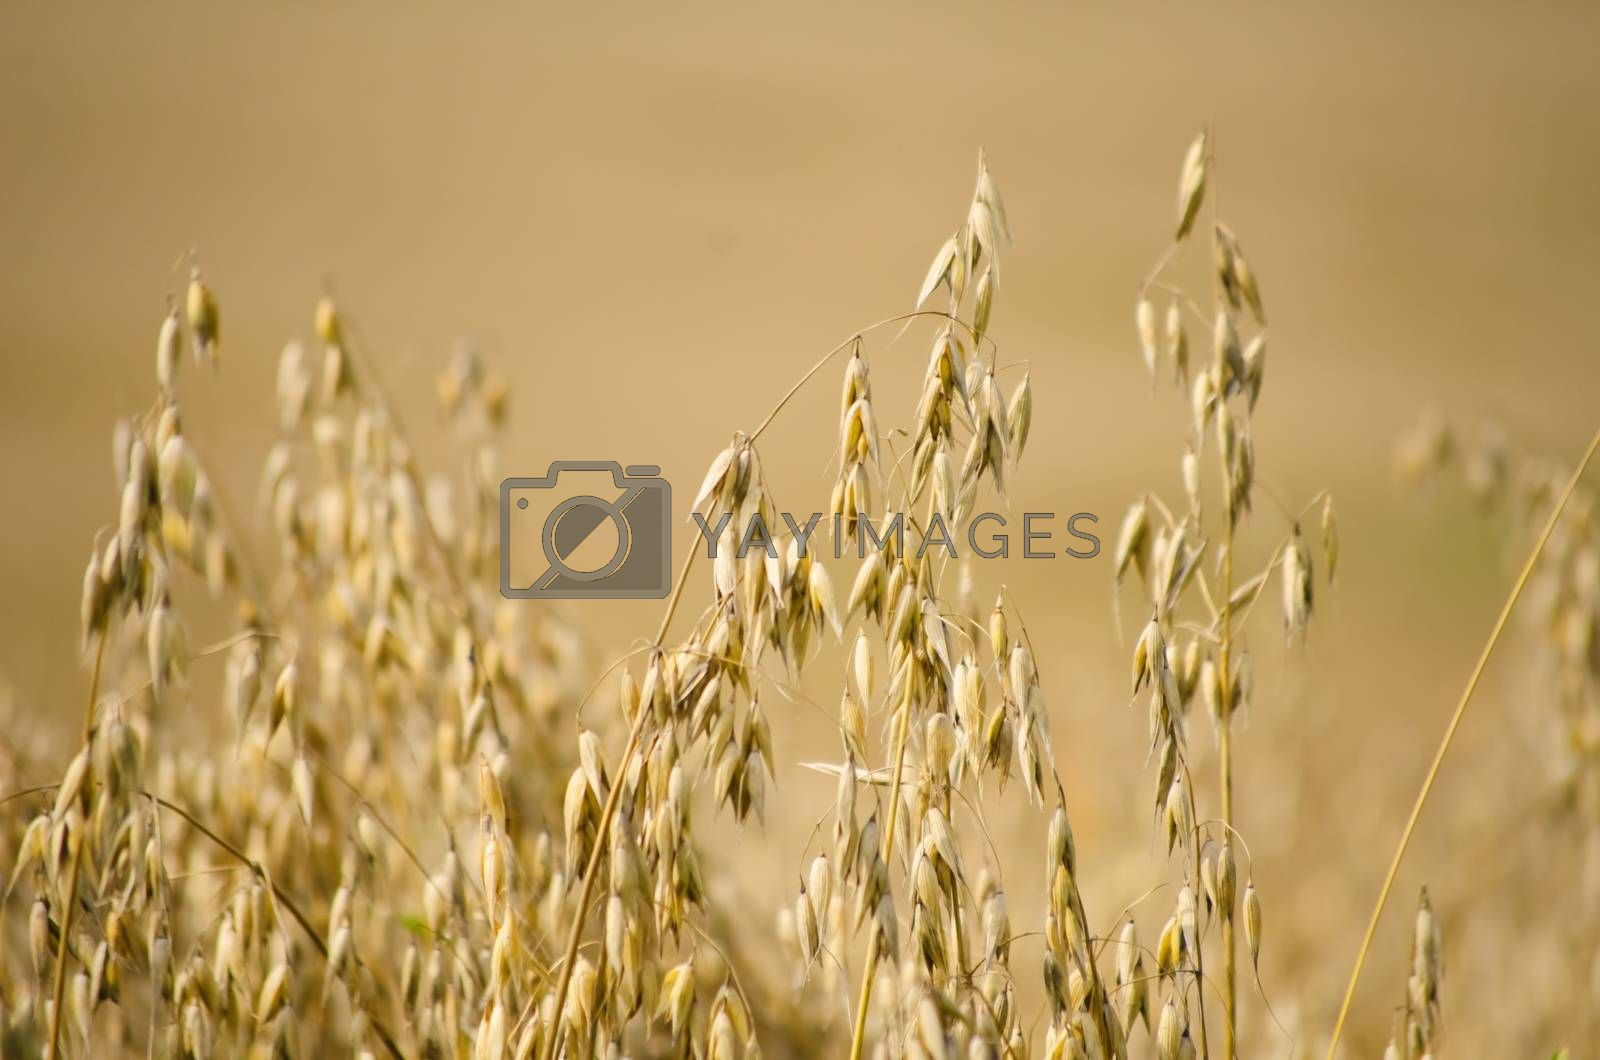 Royalty free image of Oat Field by razvodovska